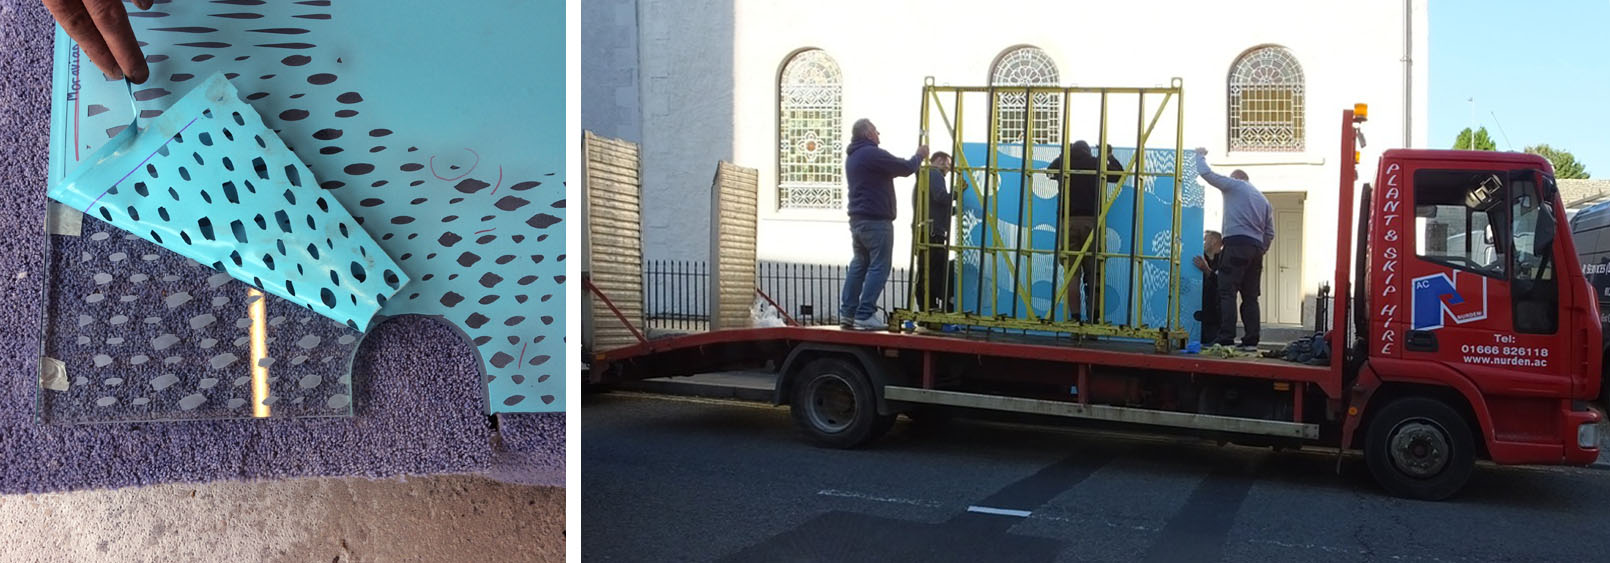 Lifting a corner of the stencil to check the sandblasted marks; glass arrives at the Moravian Church.